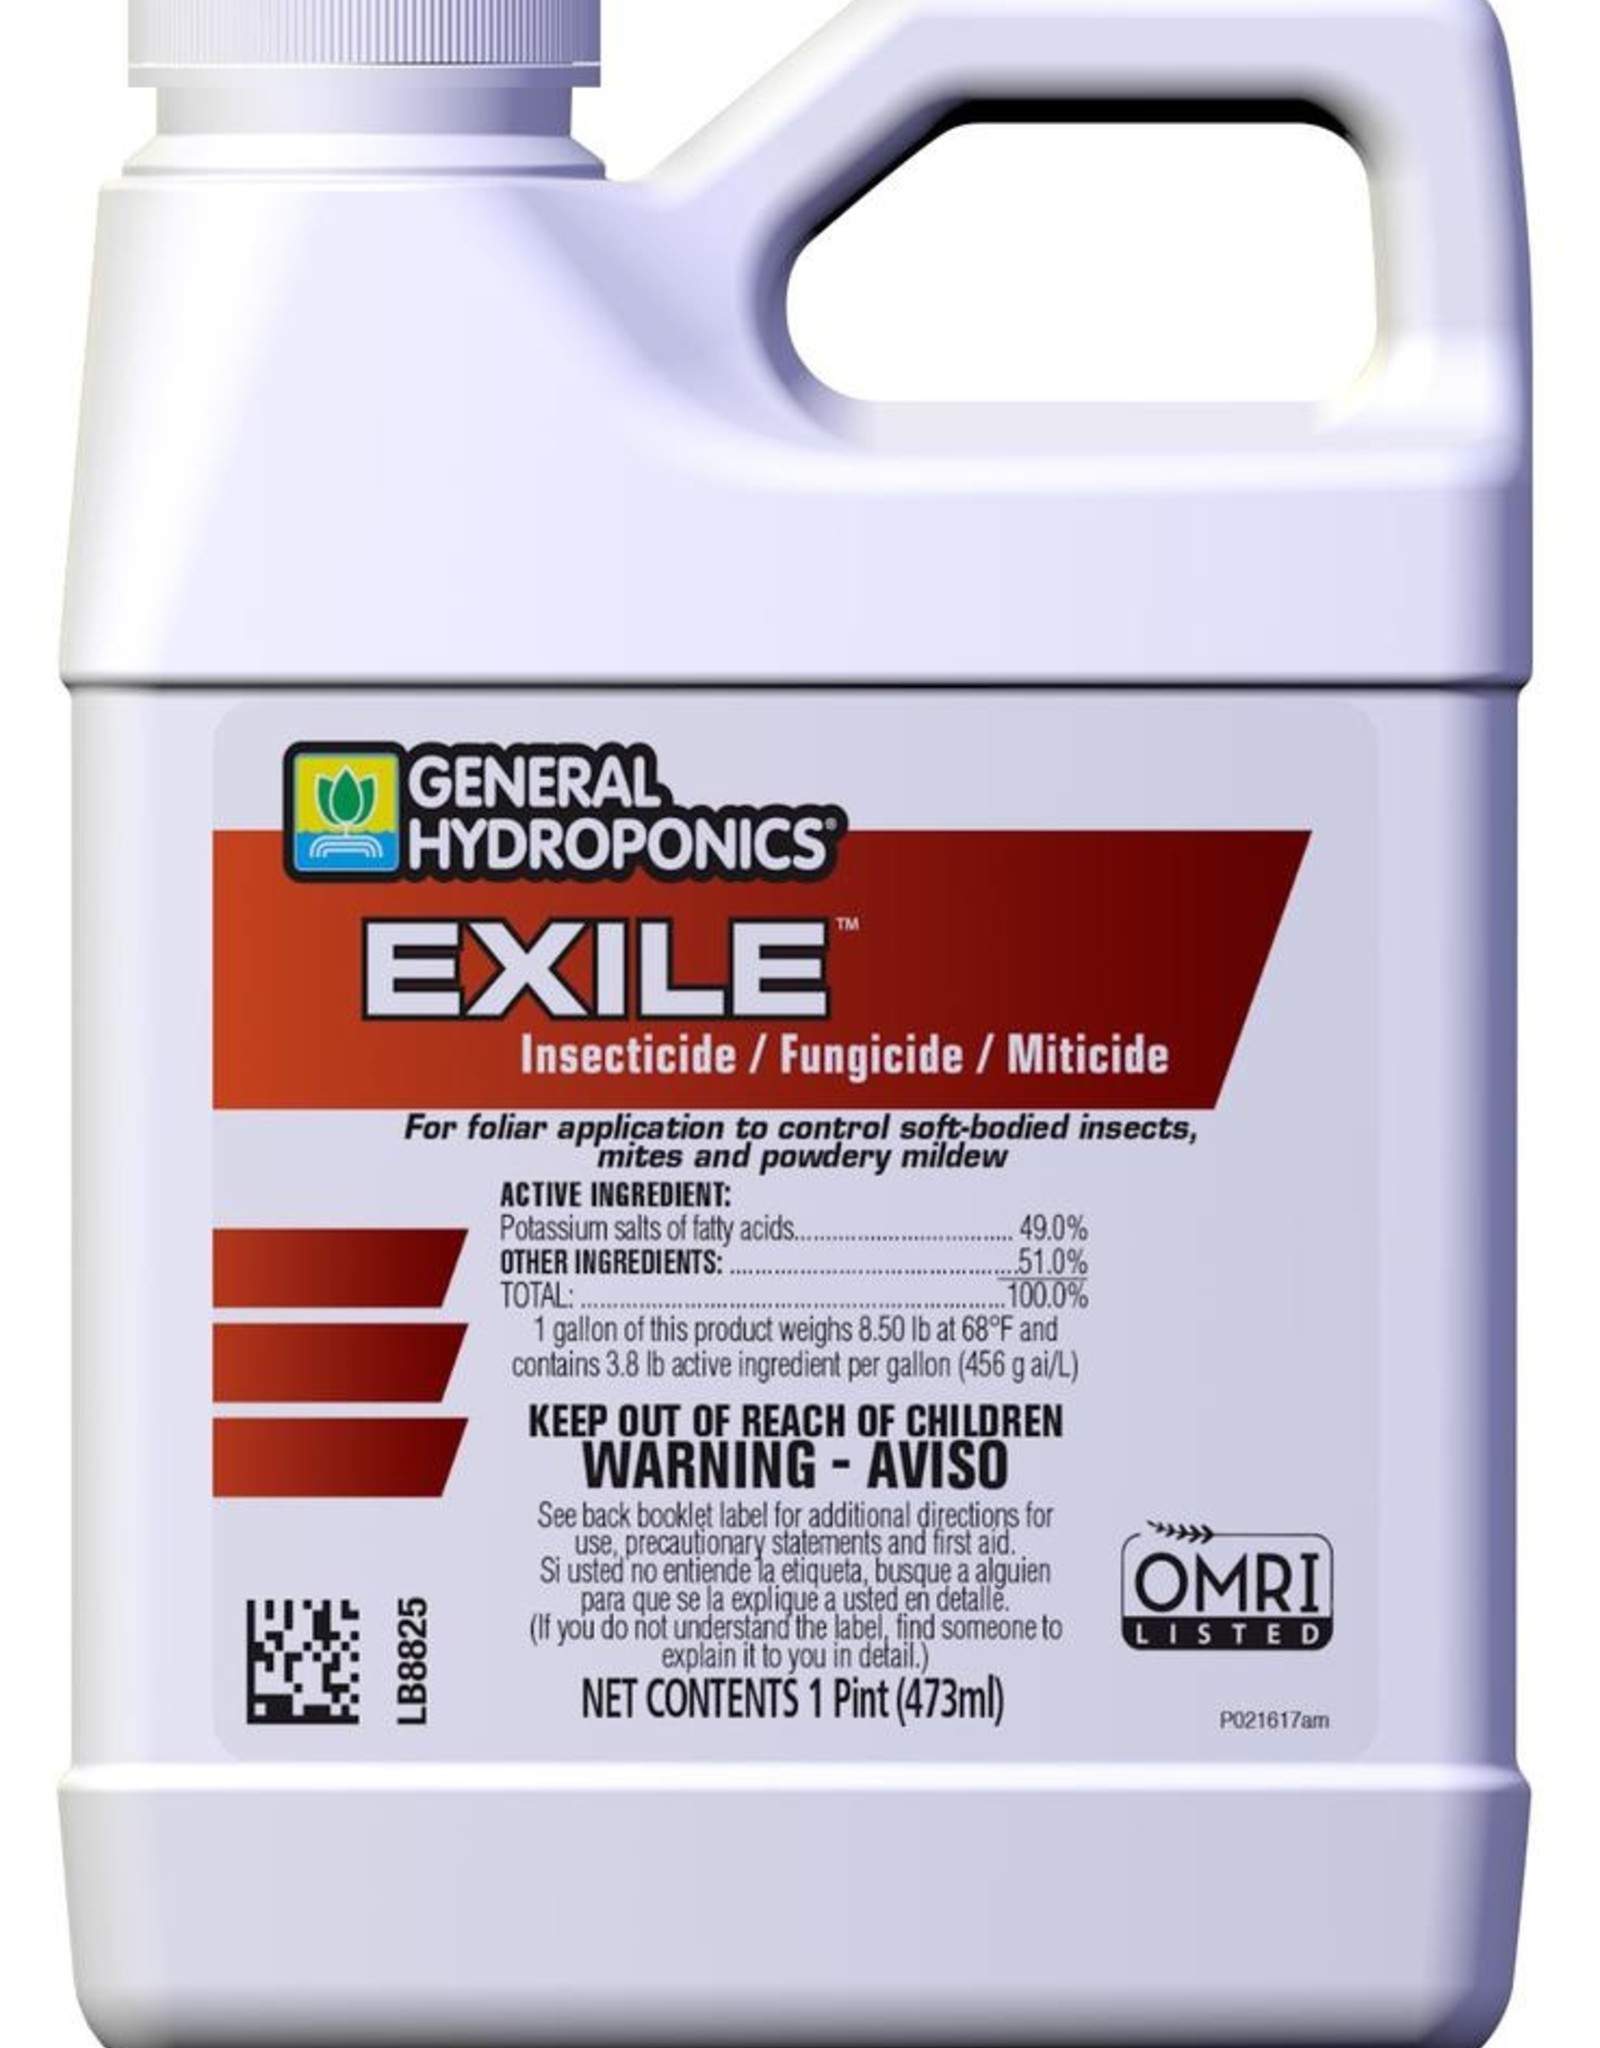 GENERAL HYDROPONICS GH Exile Insecticide / Fungicide / Miticide Pint